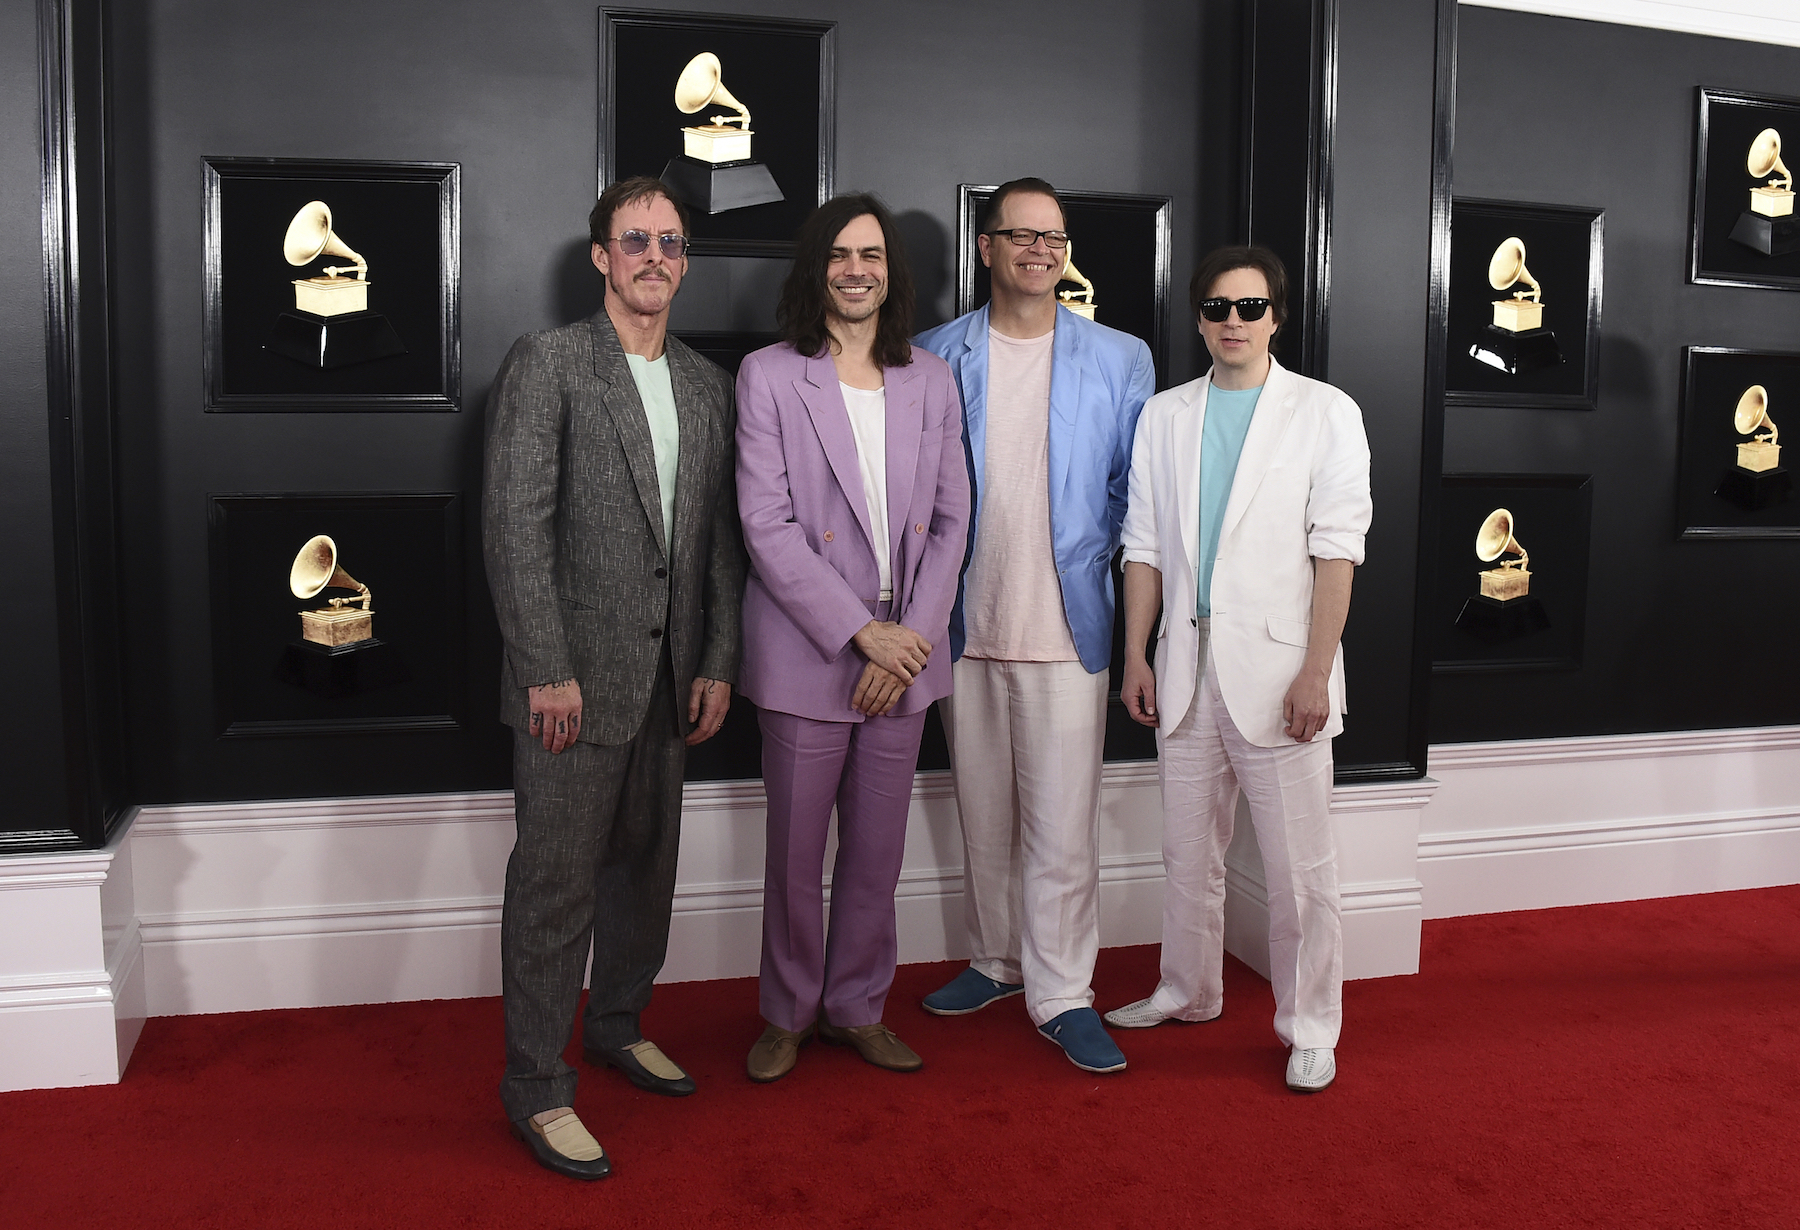 "<div class=""meta image-caption""><div class=""origin-logo origin-image ap""><span>AP</span></div><span class=""caption-text"">Rivers Cuomo, from left, Brian Bell, Patrick Wilson, and Scott Shriner of Weezer arrive at the 61st annual Grammy Awards at the Staples Center on Sunday, Feb. 10, 2019. (Jordan Strauss/Invision/AP)</span></div>"